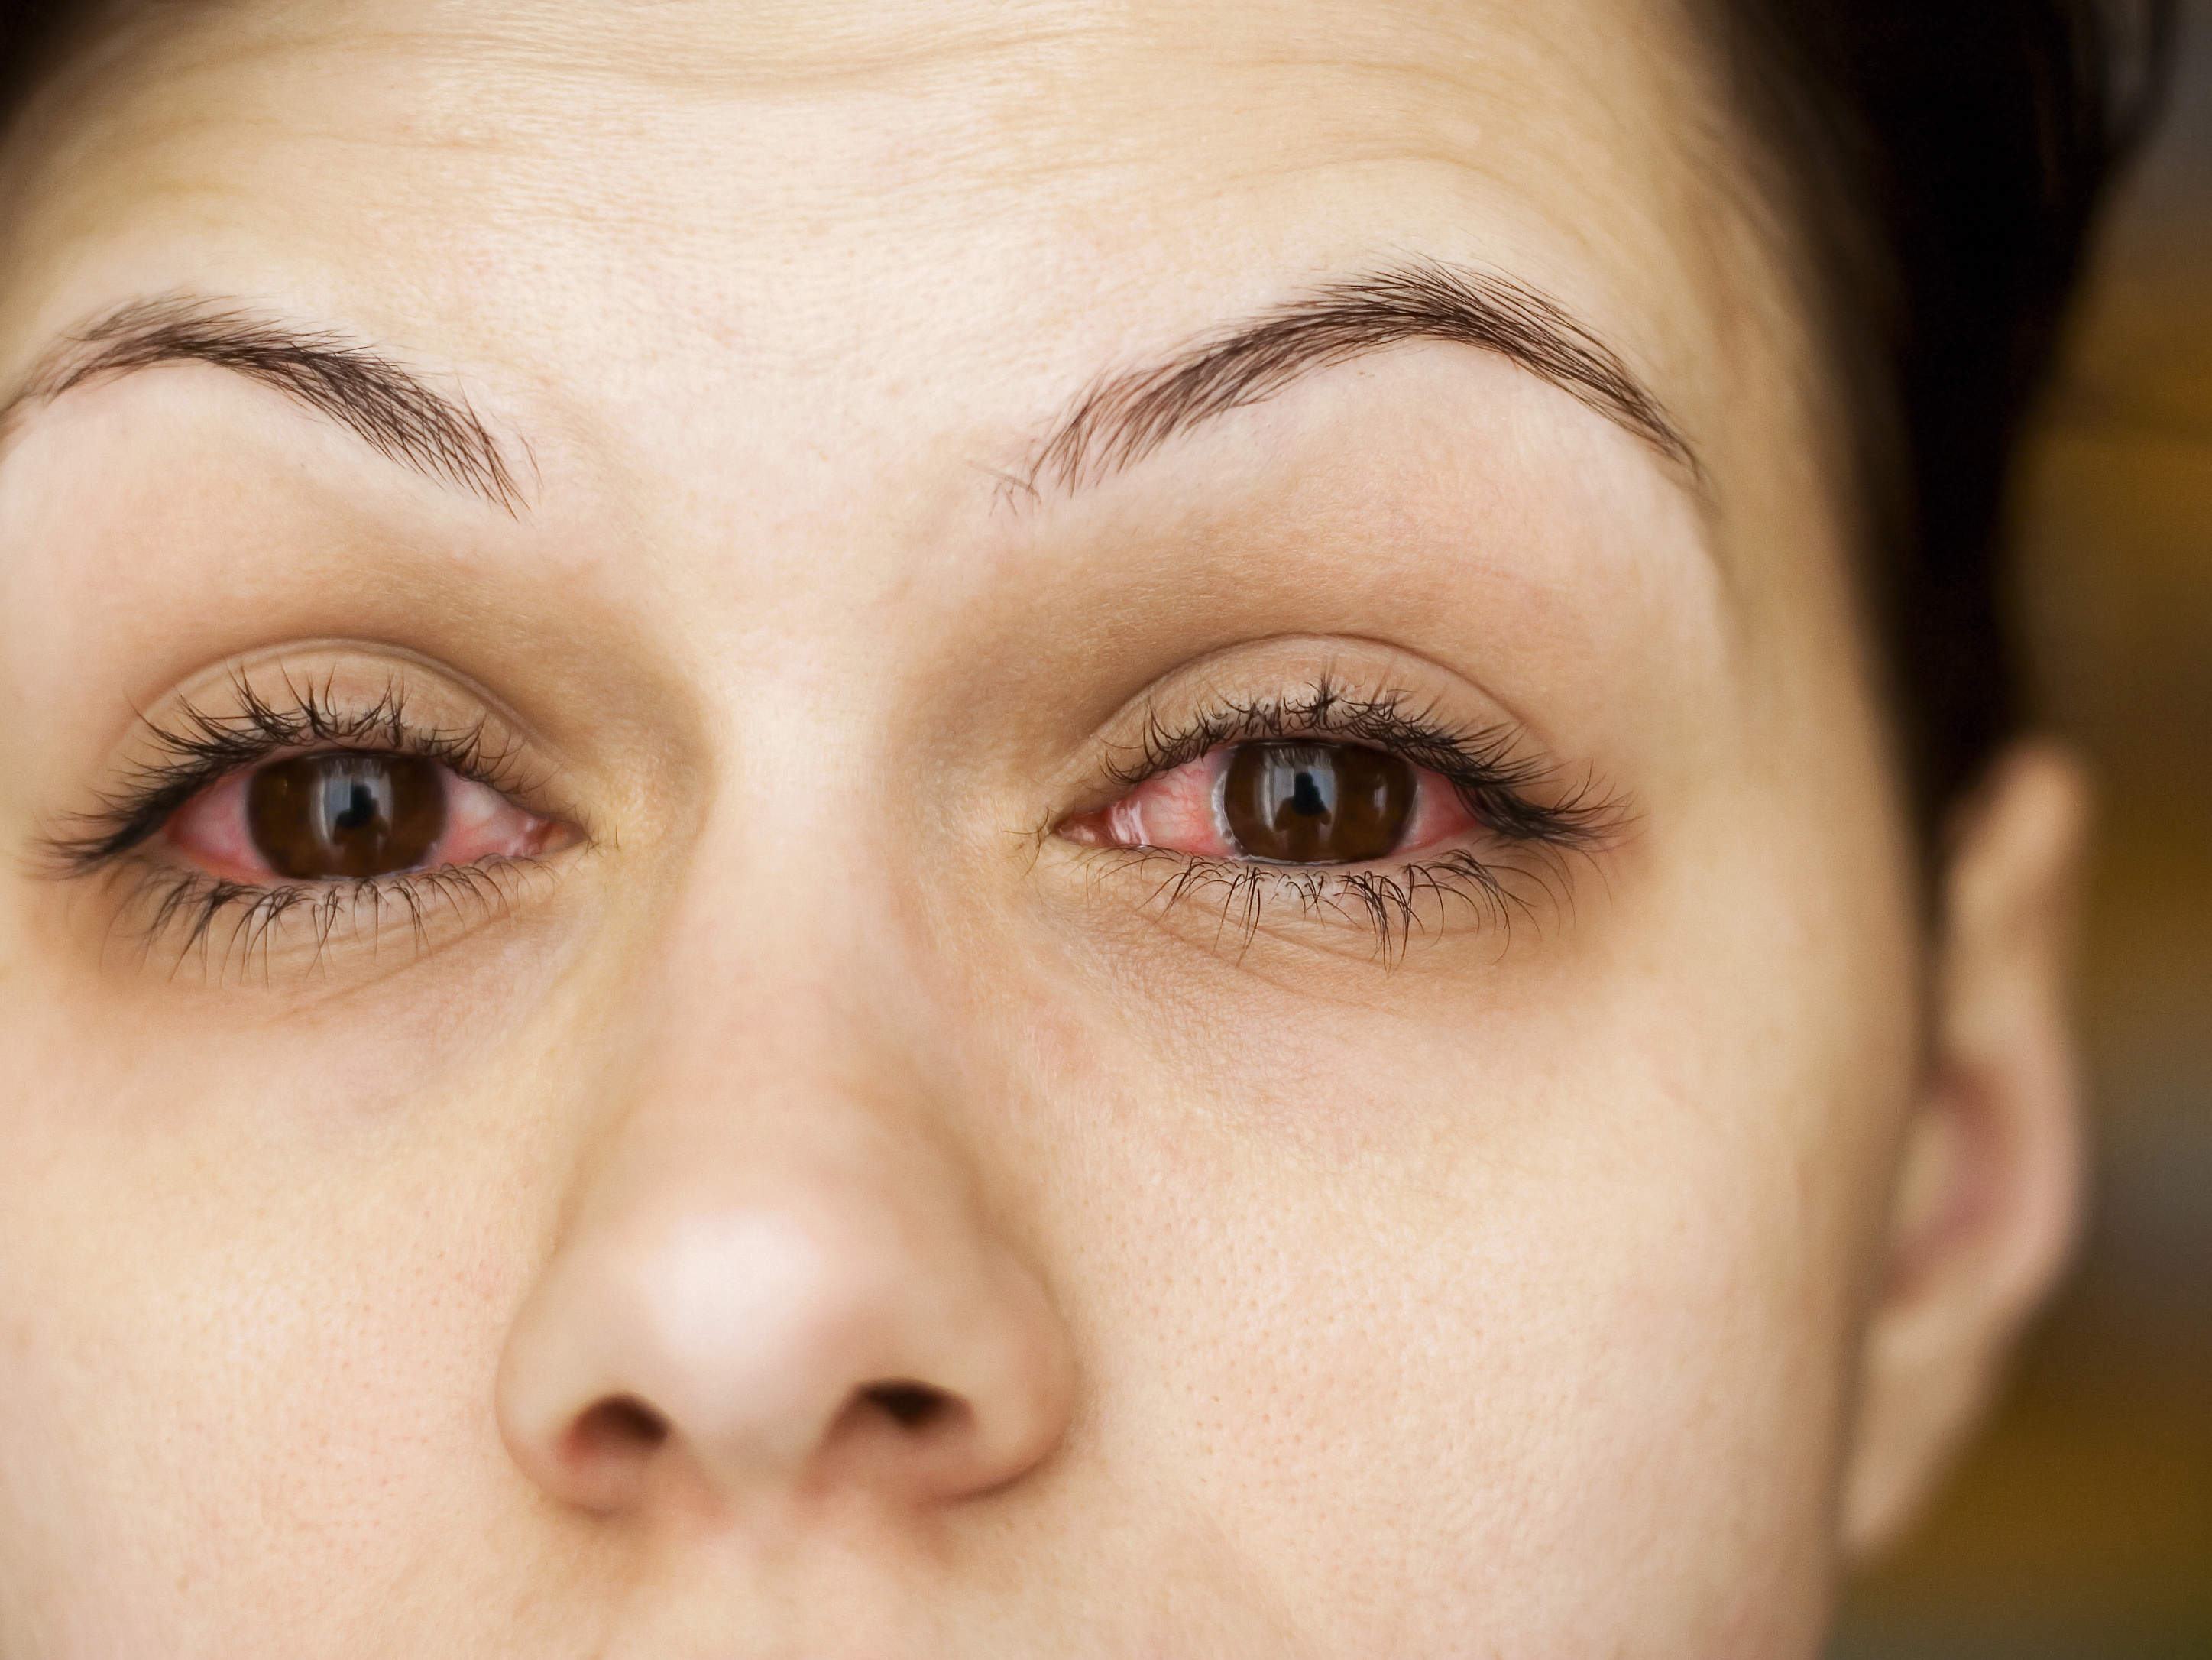 How to Get Rid of Puffy Eyes in 11 Ways - Health